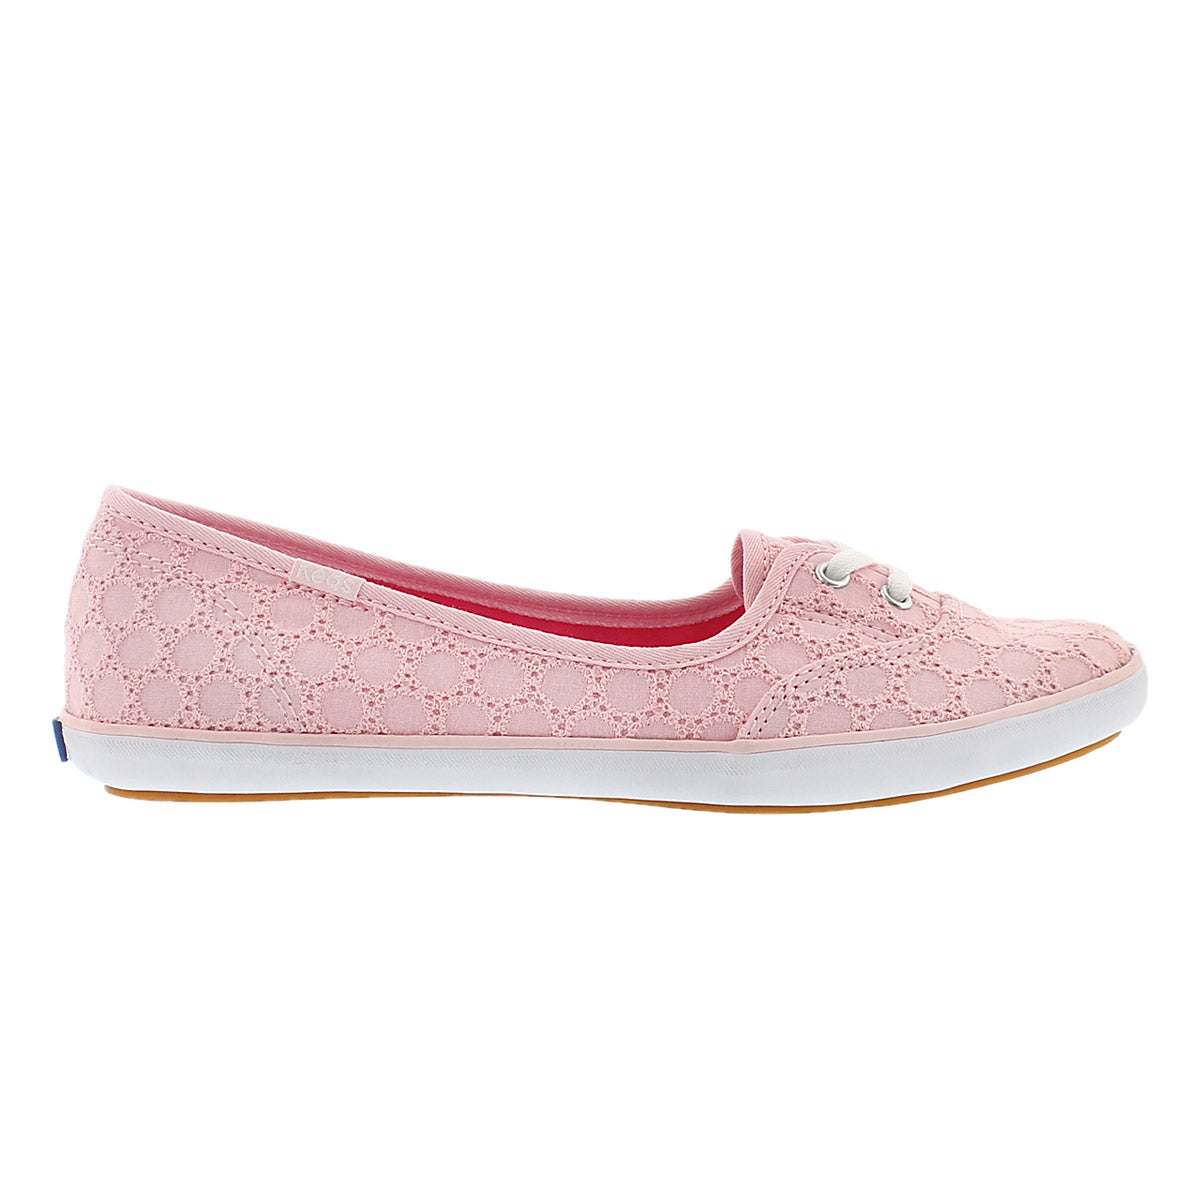 Lds Teacup Eyelet light pink slip on